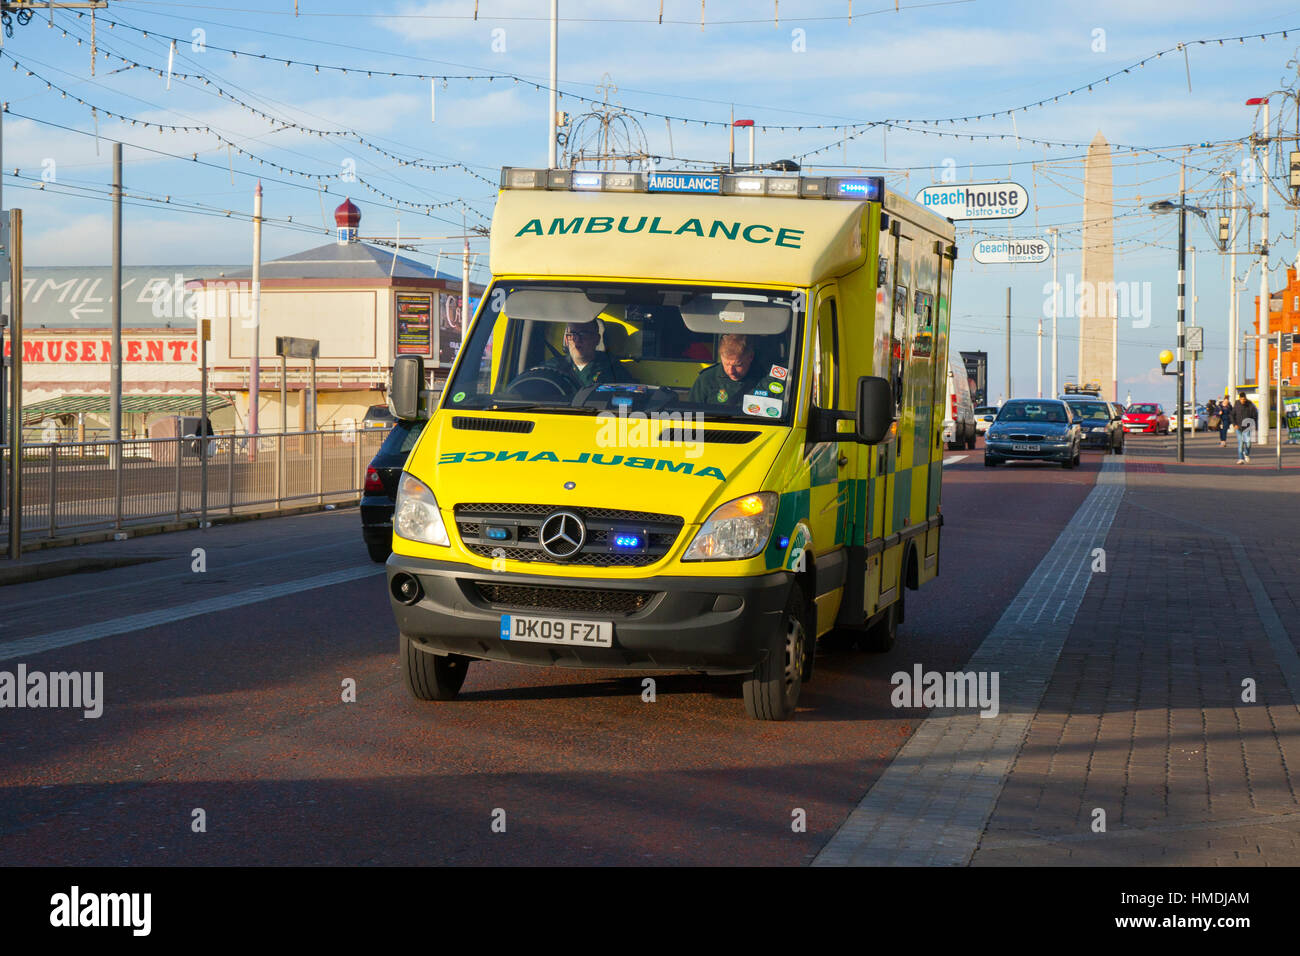 Emergency north west ambulance rushing through Blackpool, Lancashire, UK - Stock Image